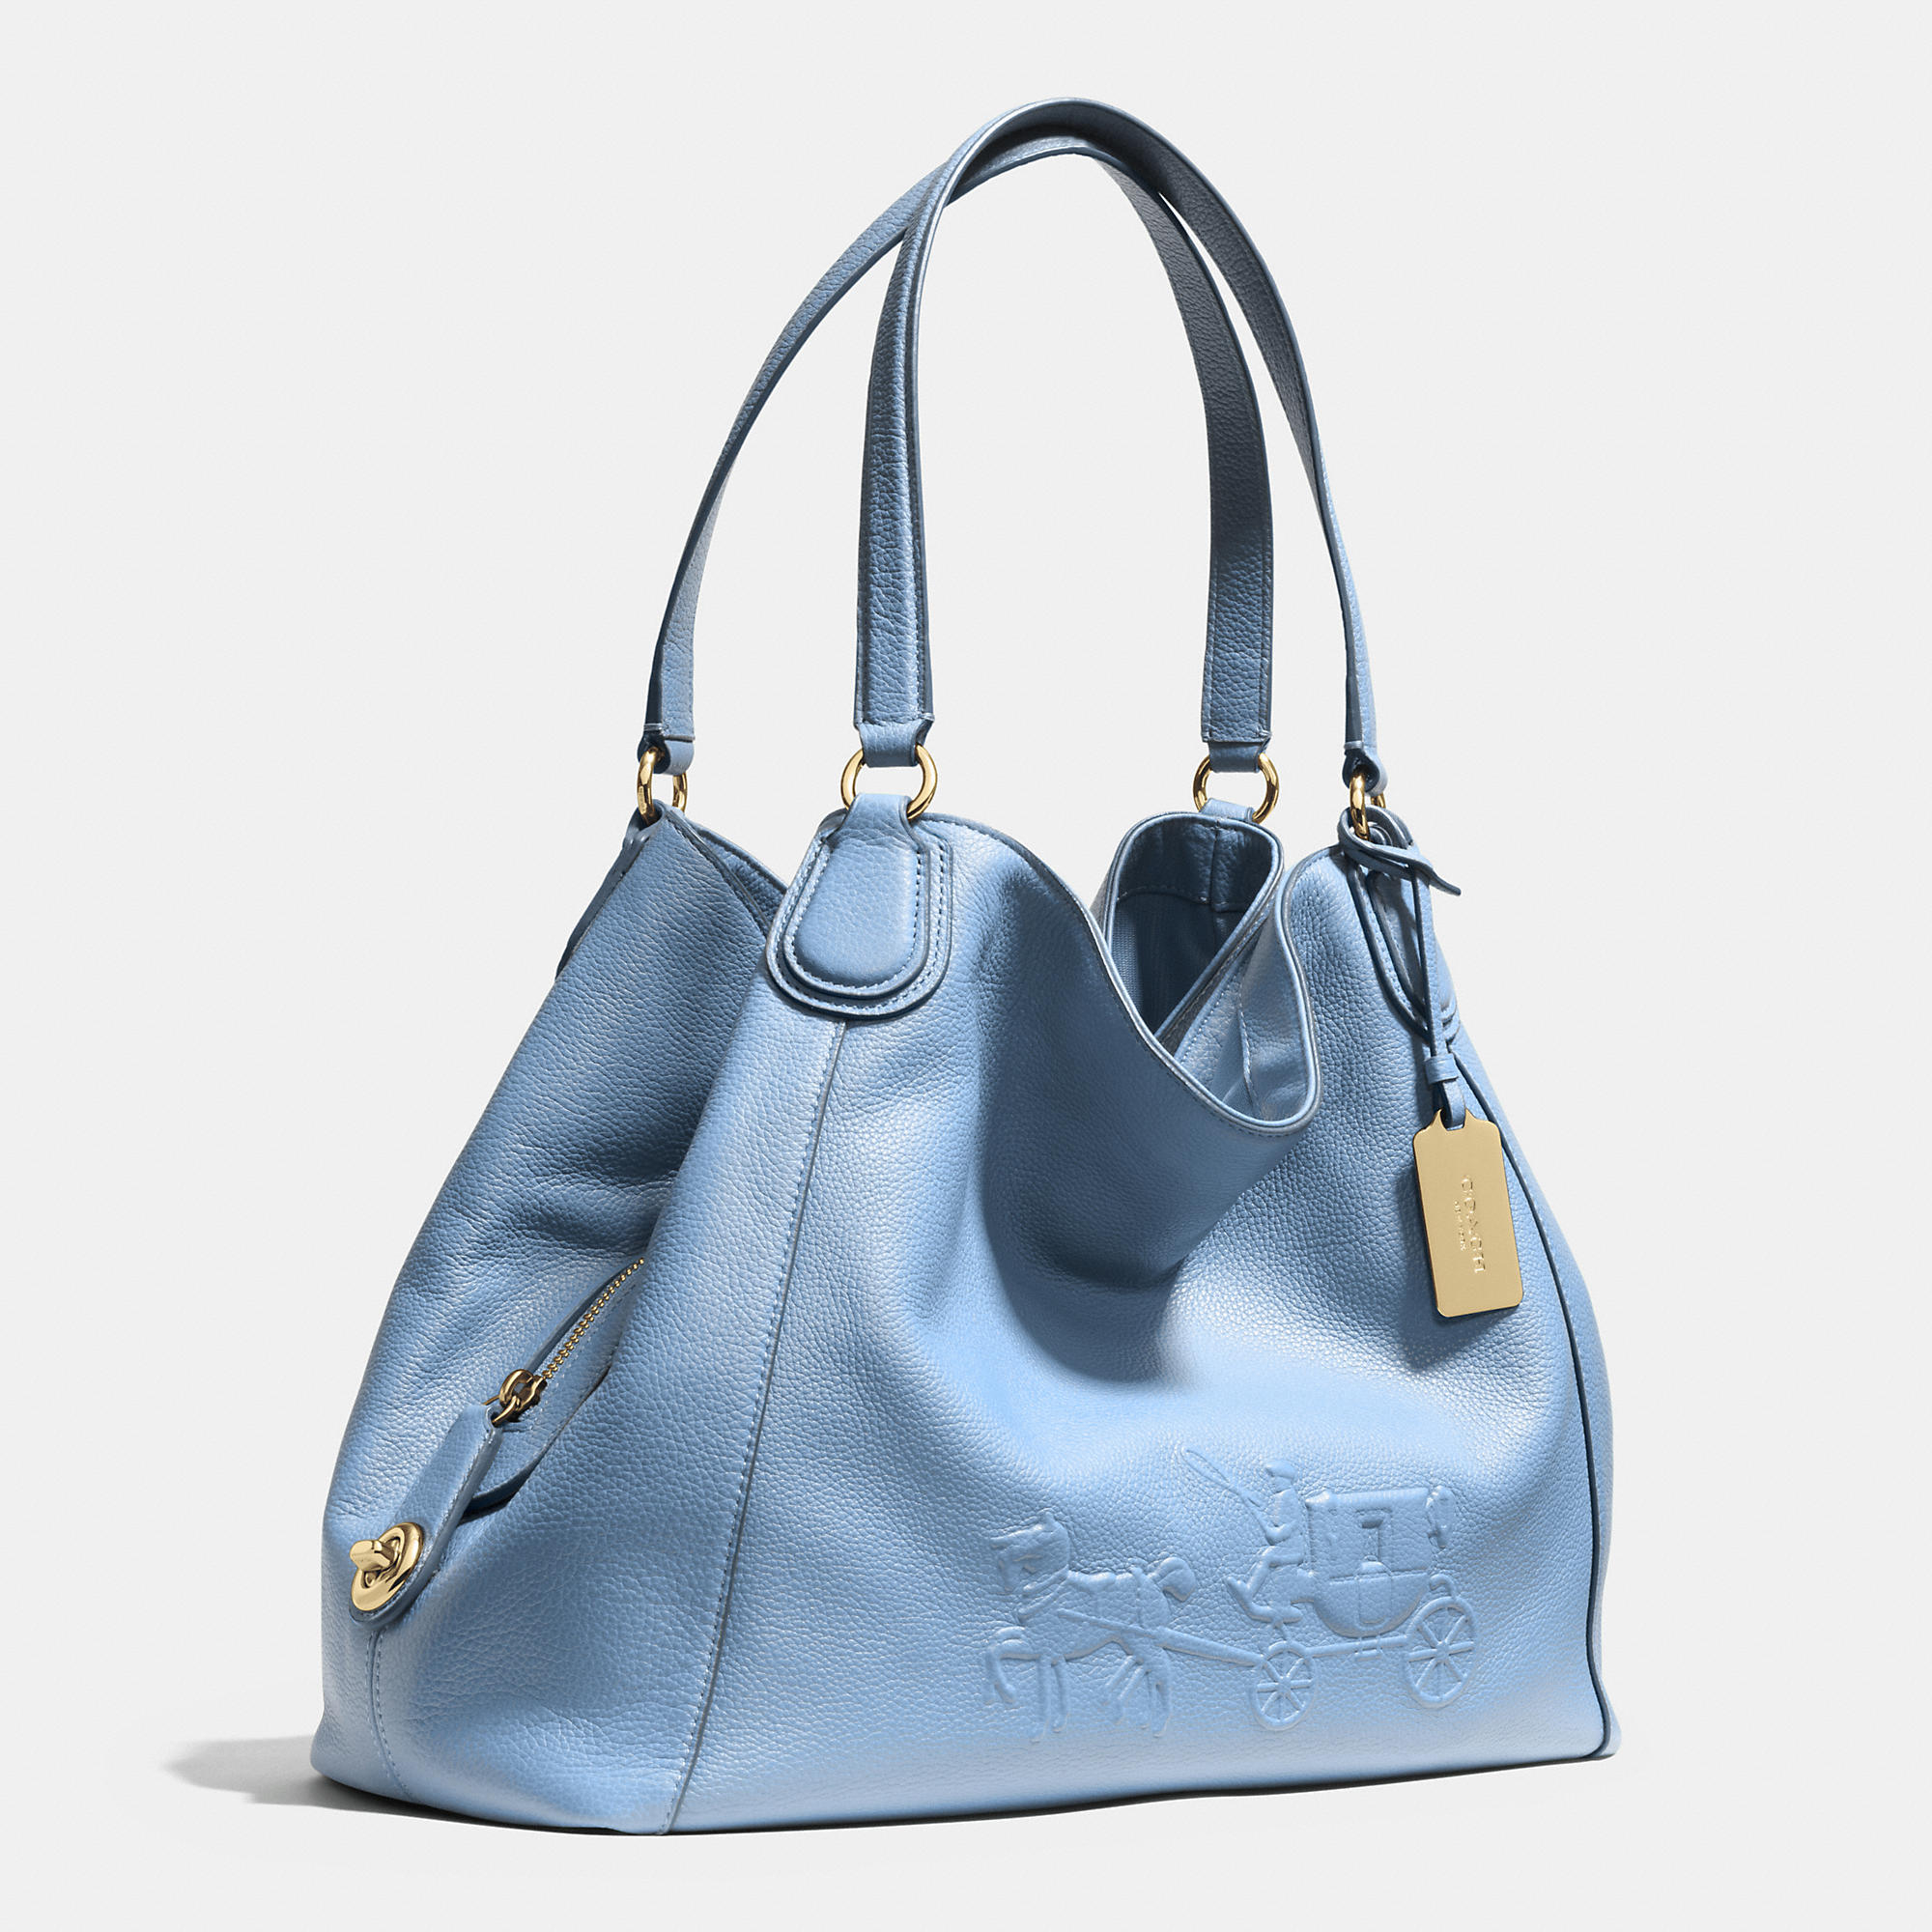 Lyst - Coach Embossed Horse And Carriage Edie Shoulder Bag In Pebbled Leather in Blue